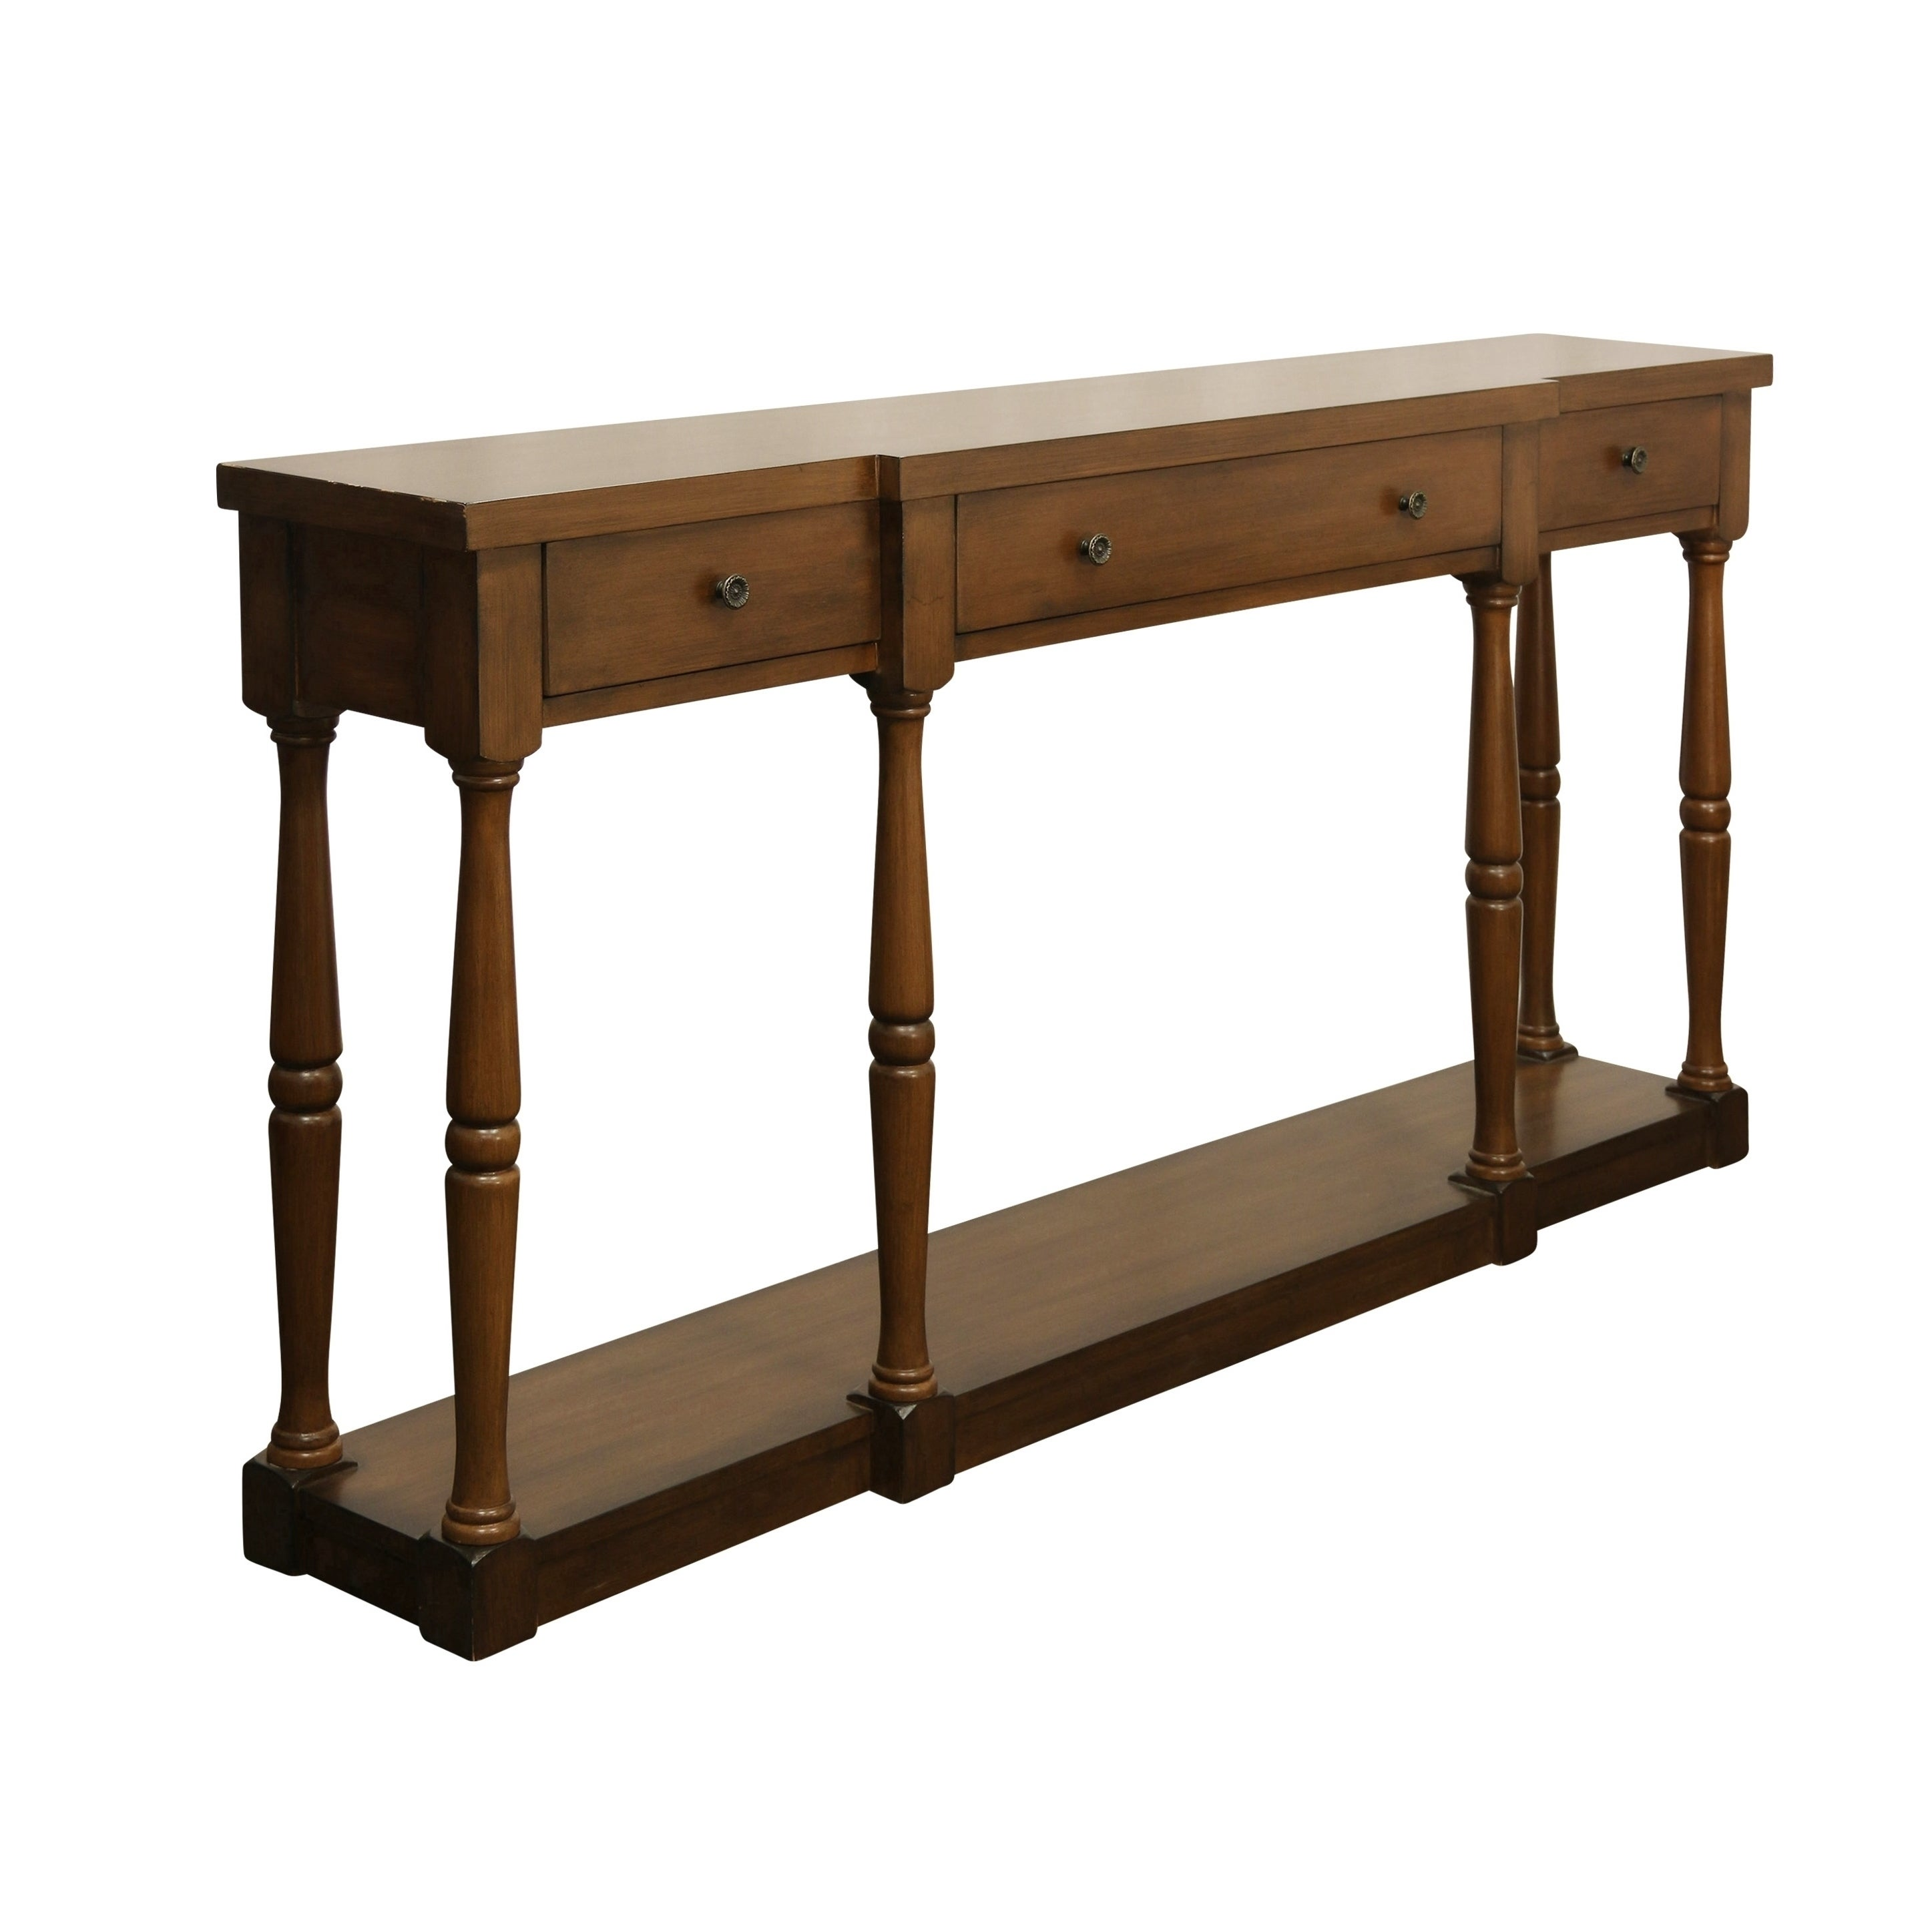 Amazing Springfield 3 Drawer Cherry Wood Console Table Bralicious Painted Fabric Chair Ideas Braliciousco